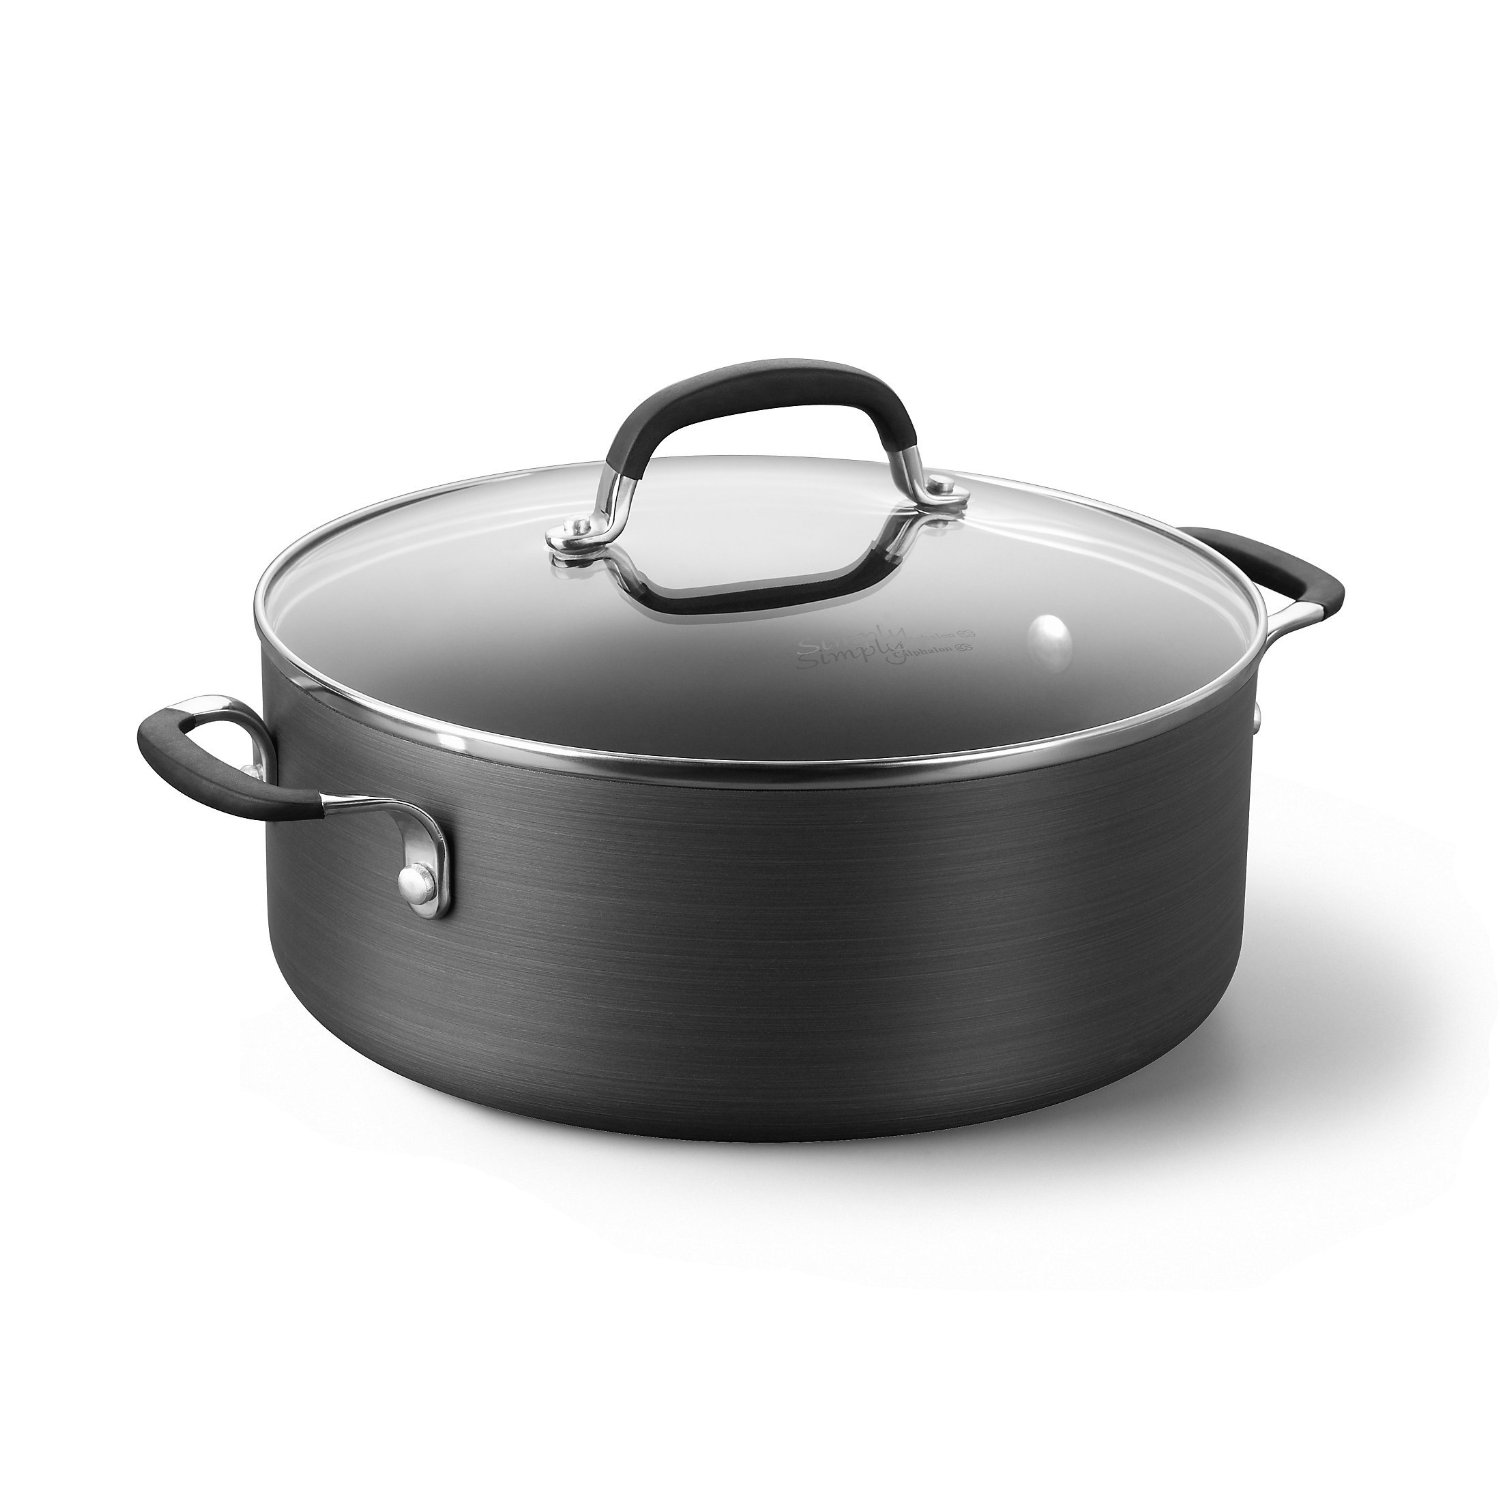 Top 10 Calphalon Cookware Reviews -Best Units for You (2018)